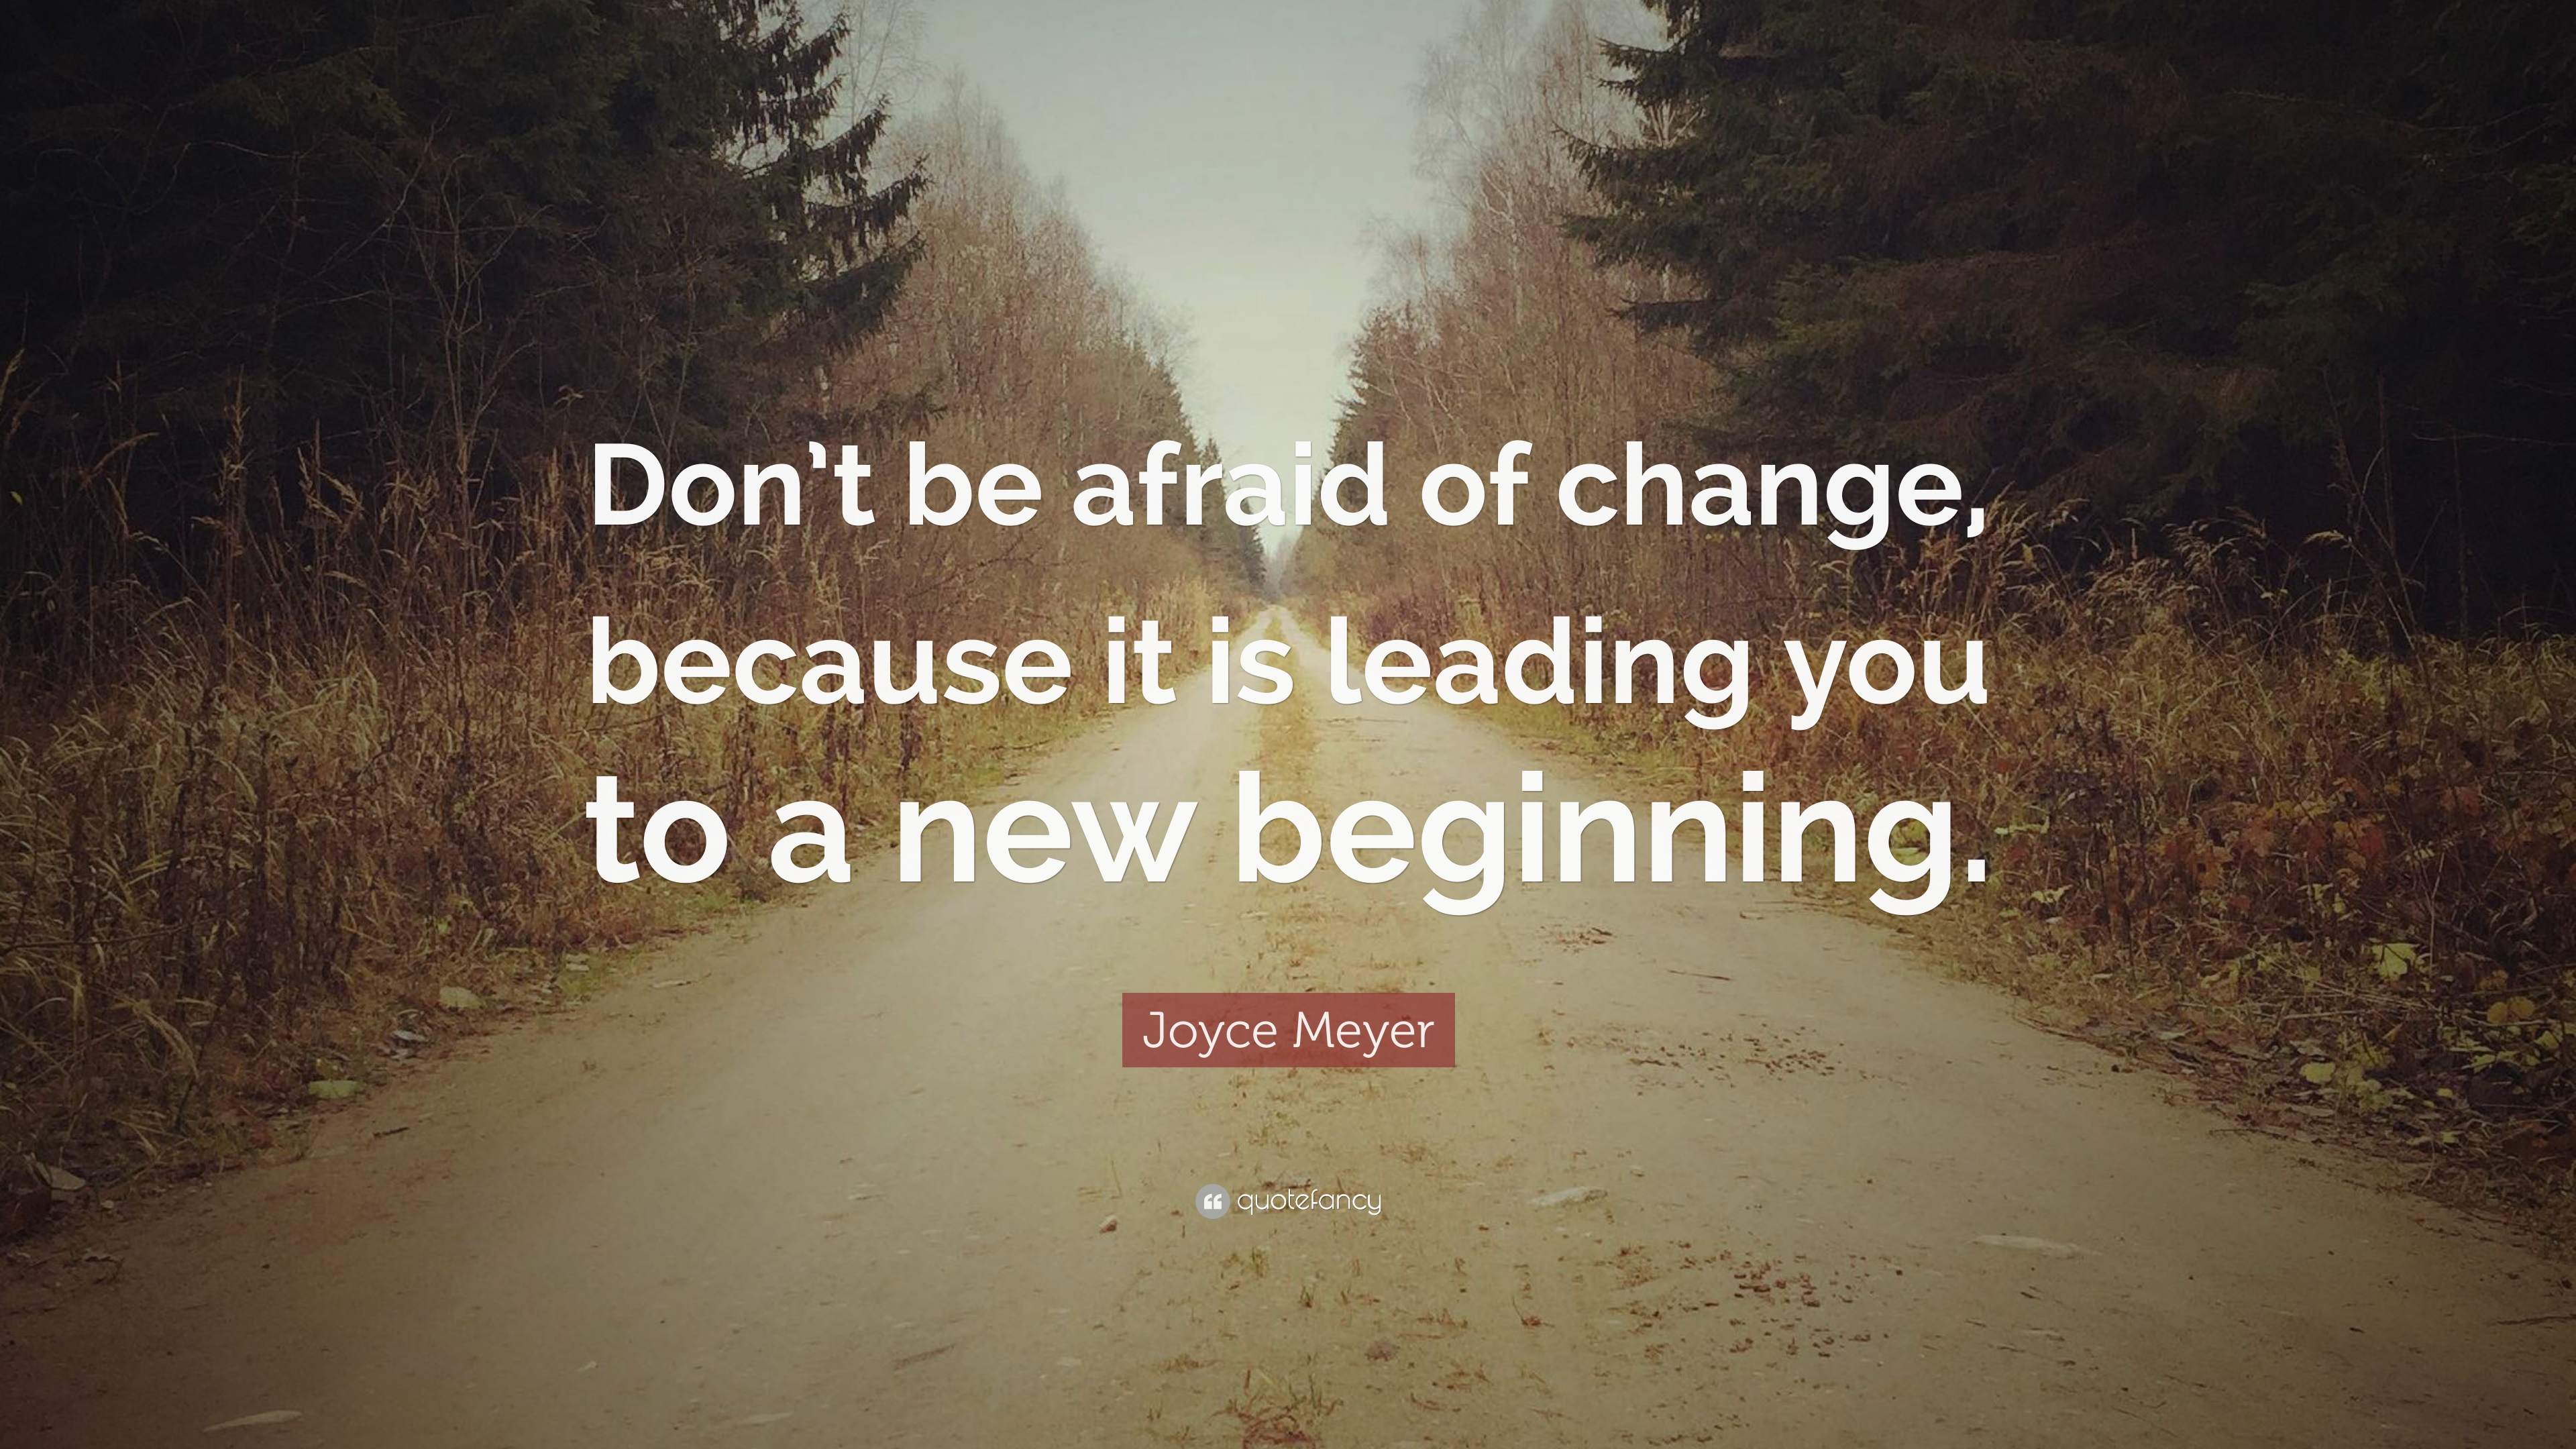 Joyce Meyer Quote: U201cDonu0027t Be Afraid Of Change, Because It Is